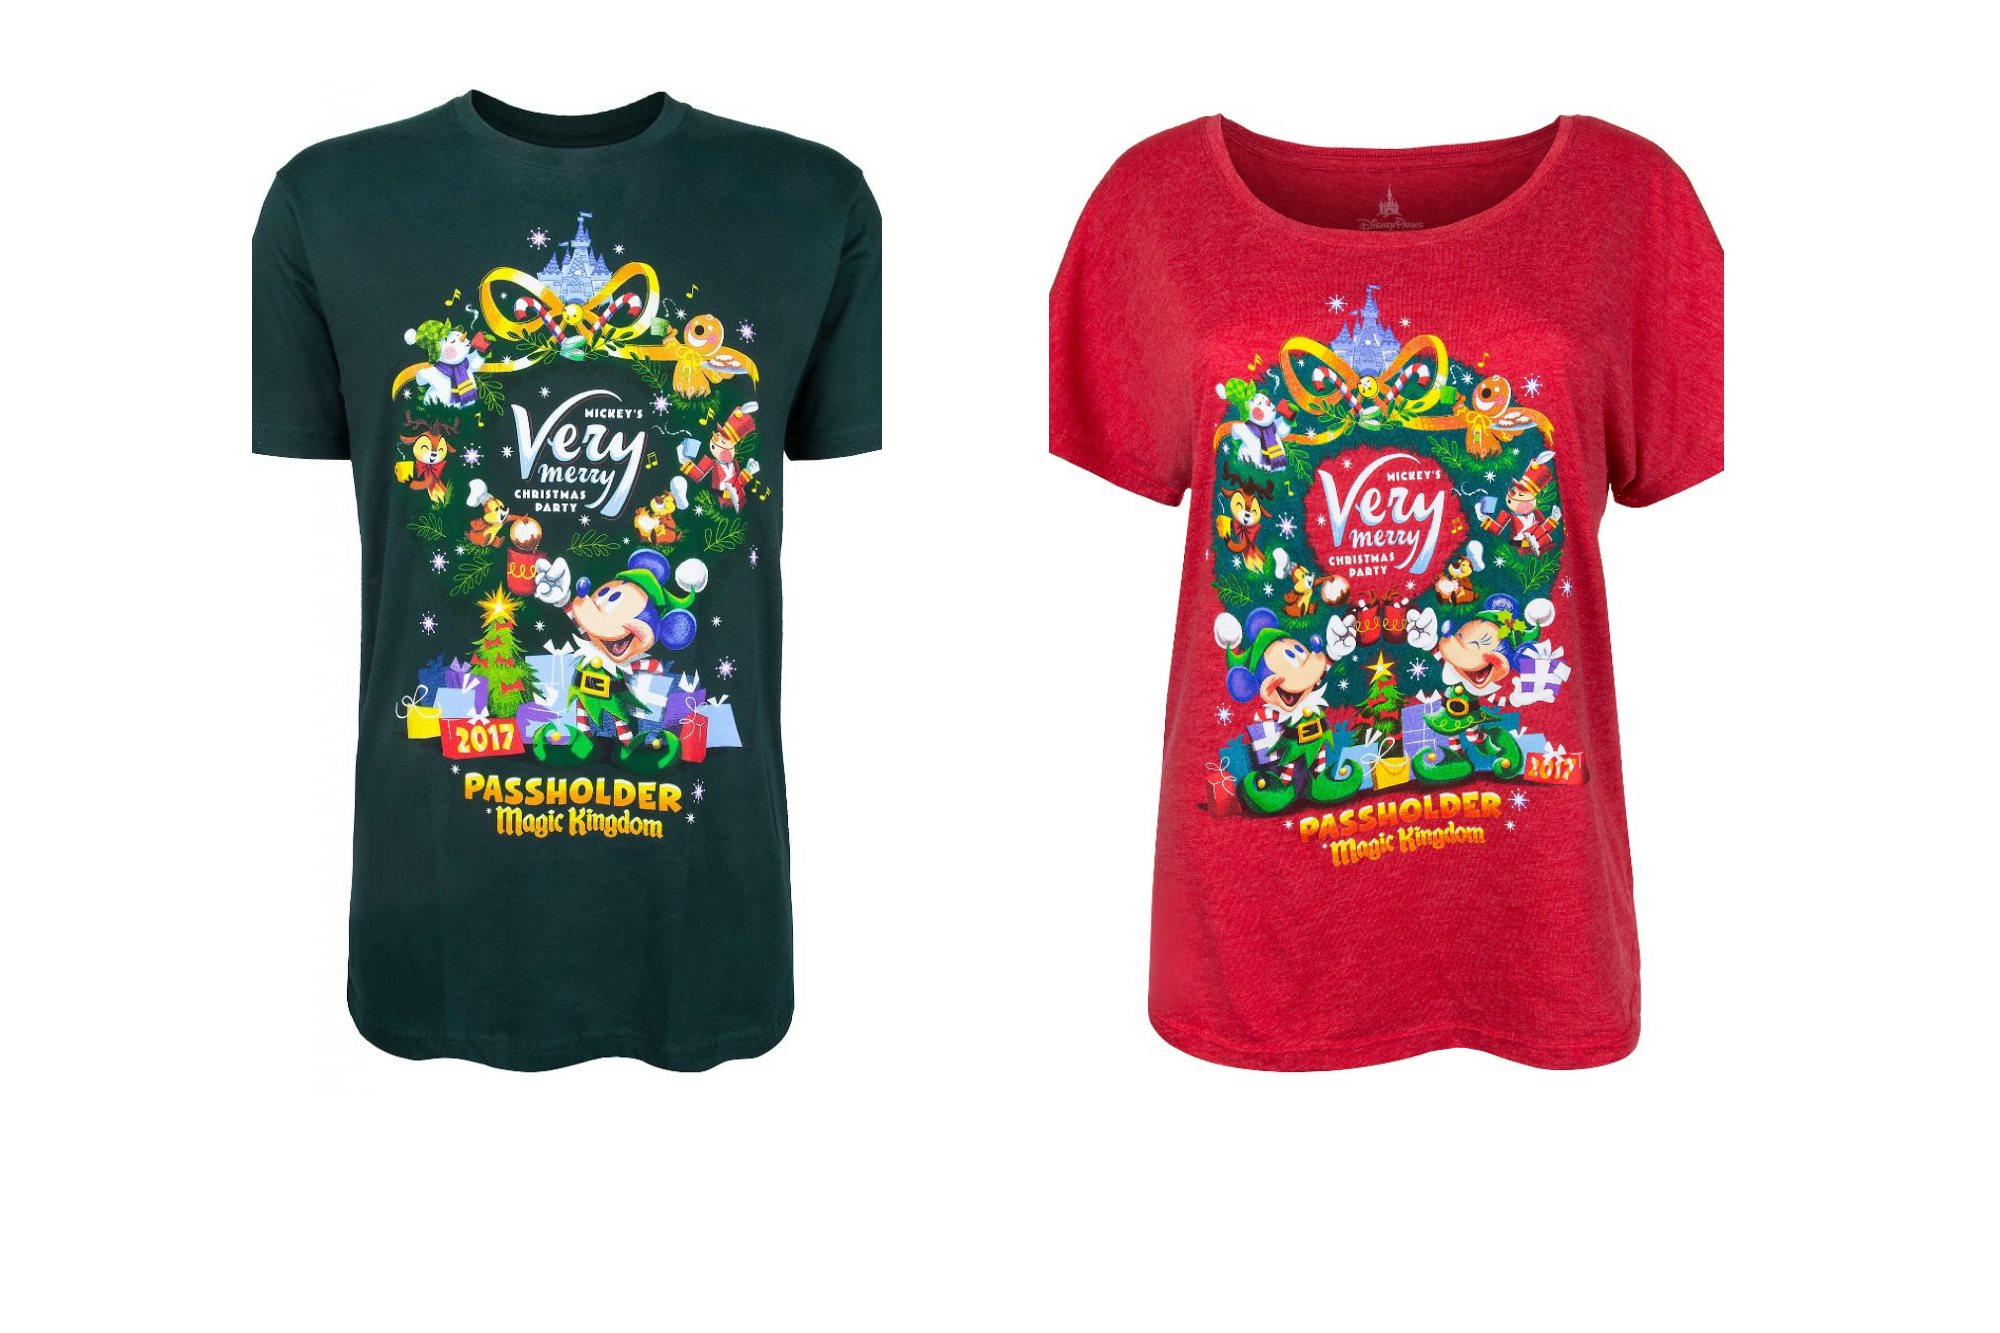 Mickey's Very Merry Christmas Party Annual Passholder Shirts Now ...